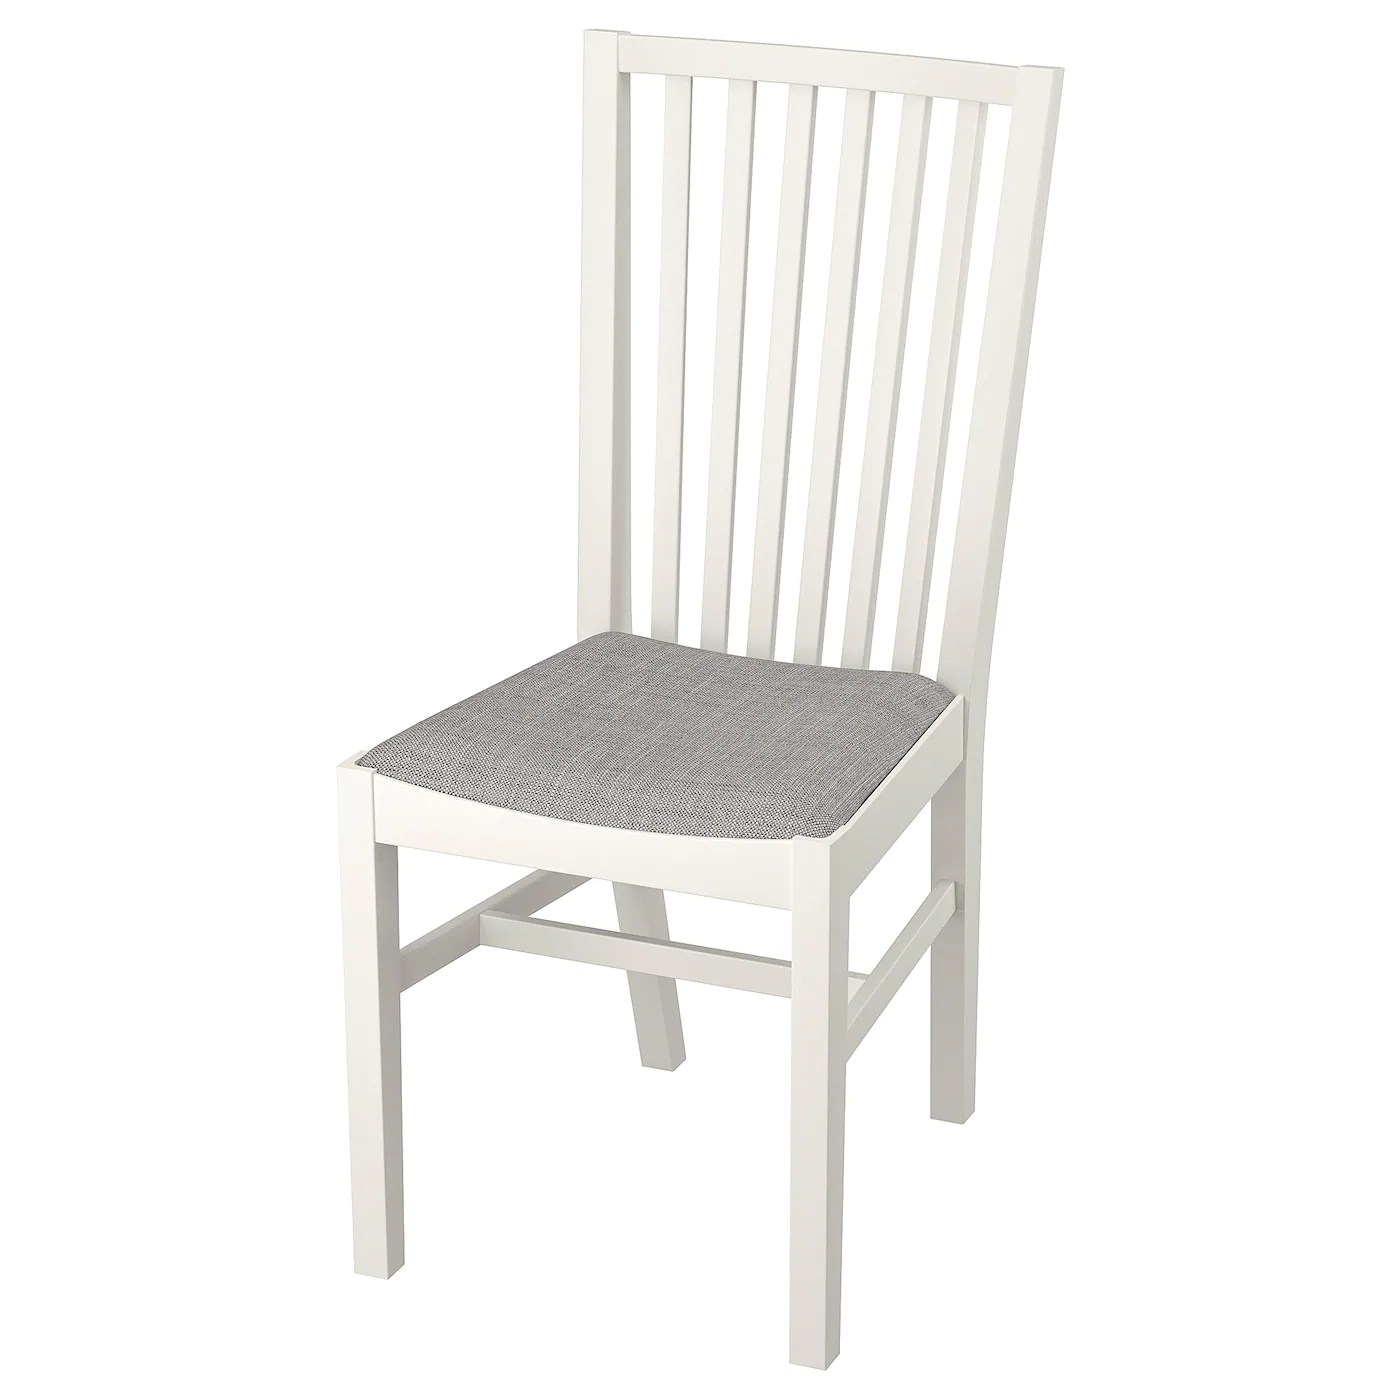 Nornas Ikea NorrnÄs Chair White Isunda Gray